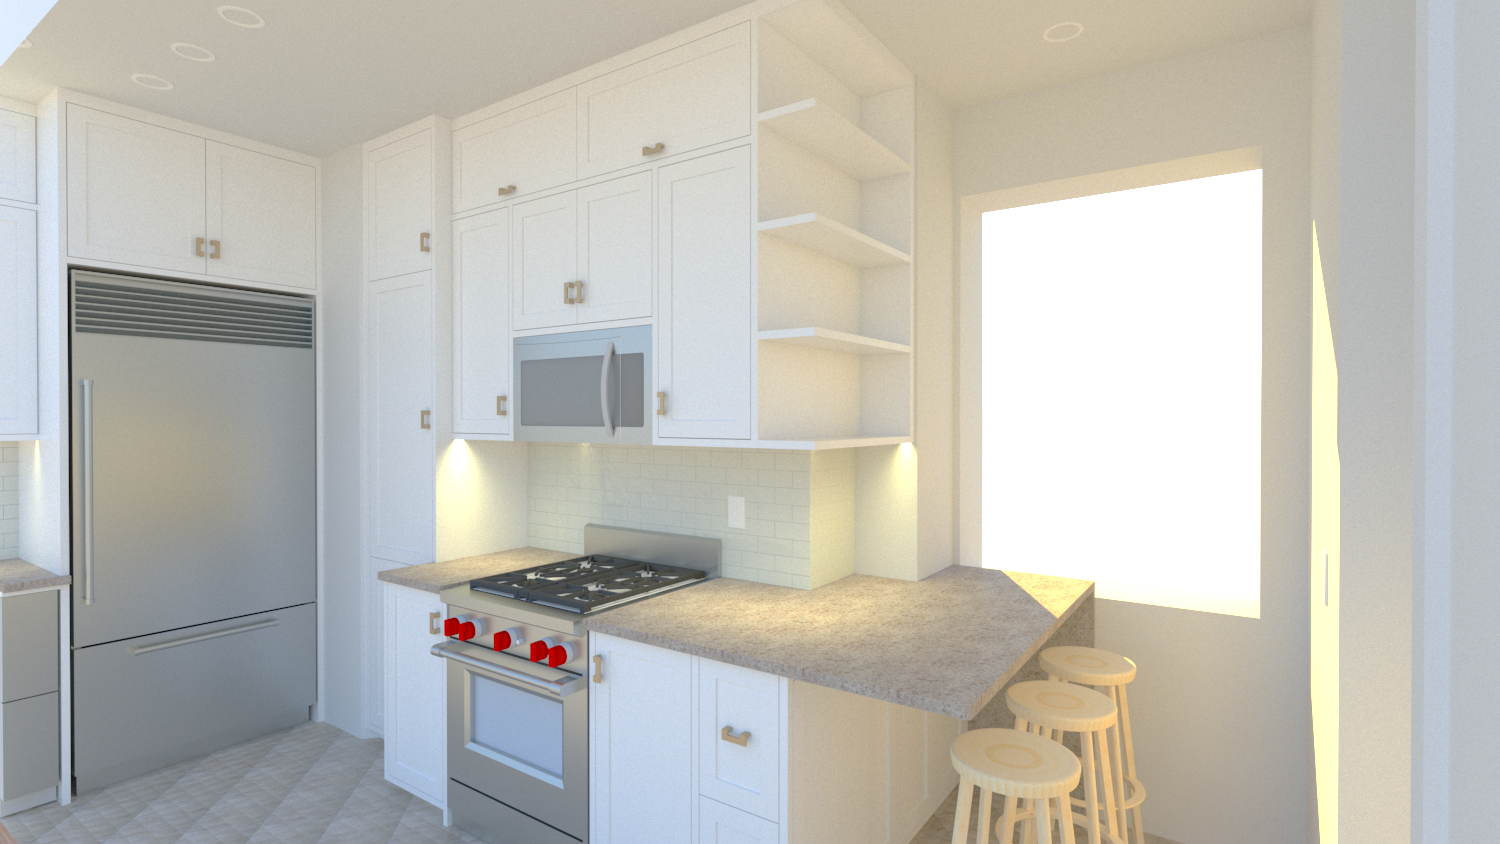 Kitchens - Contact us